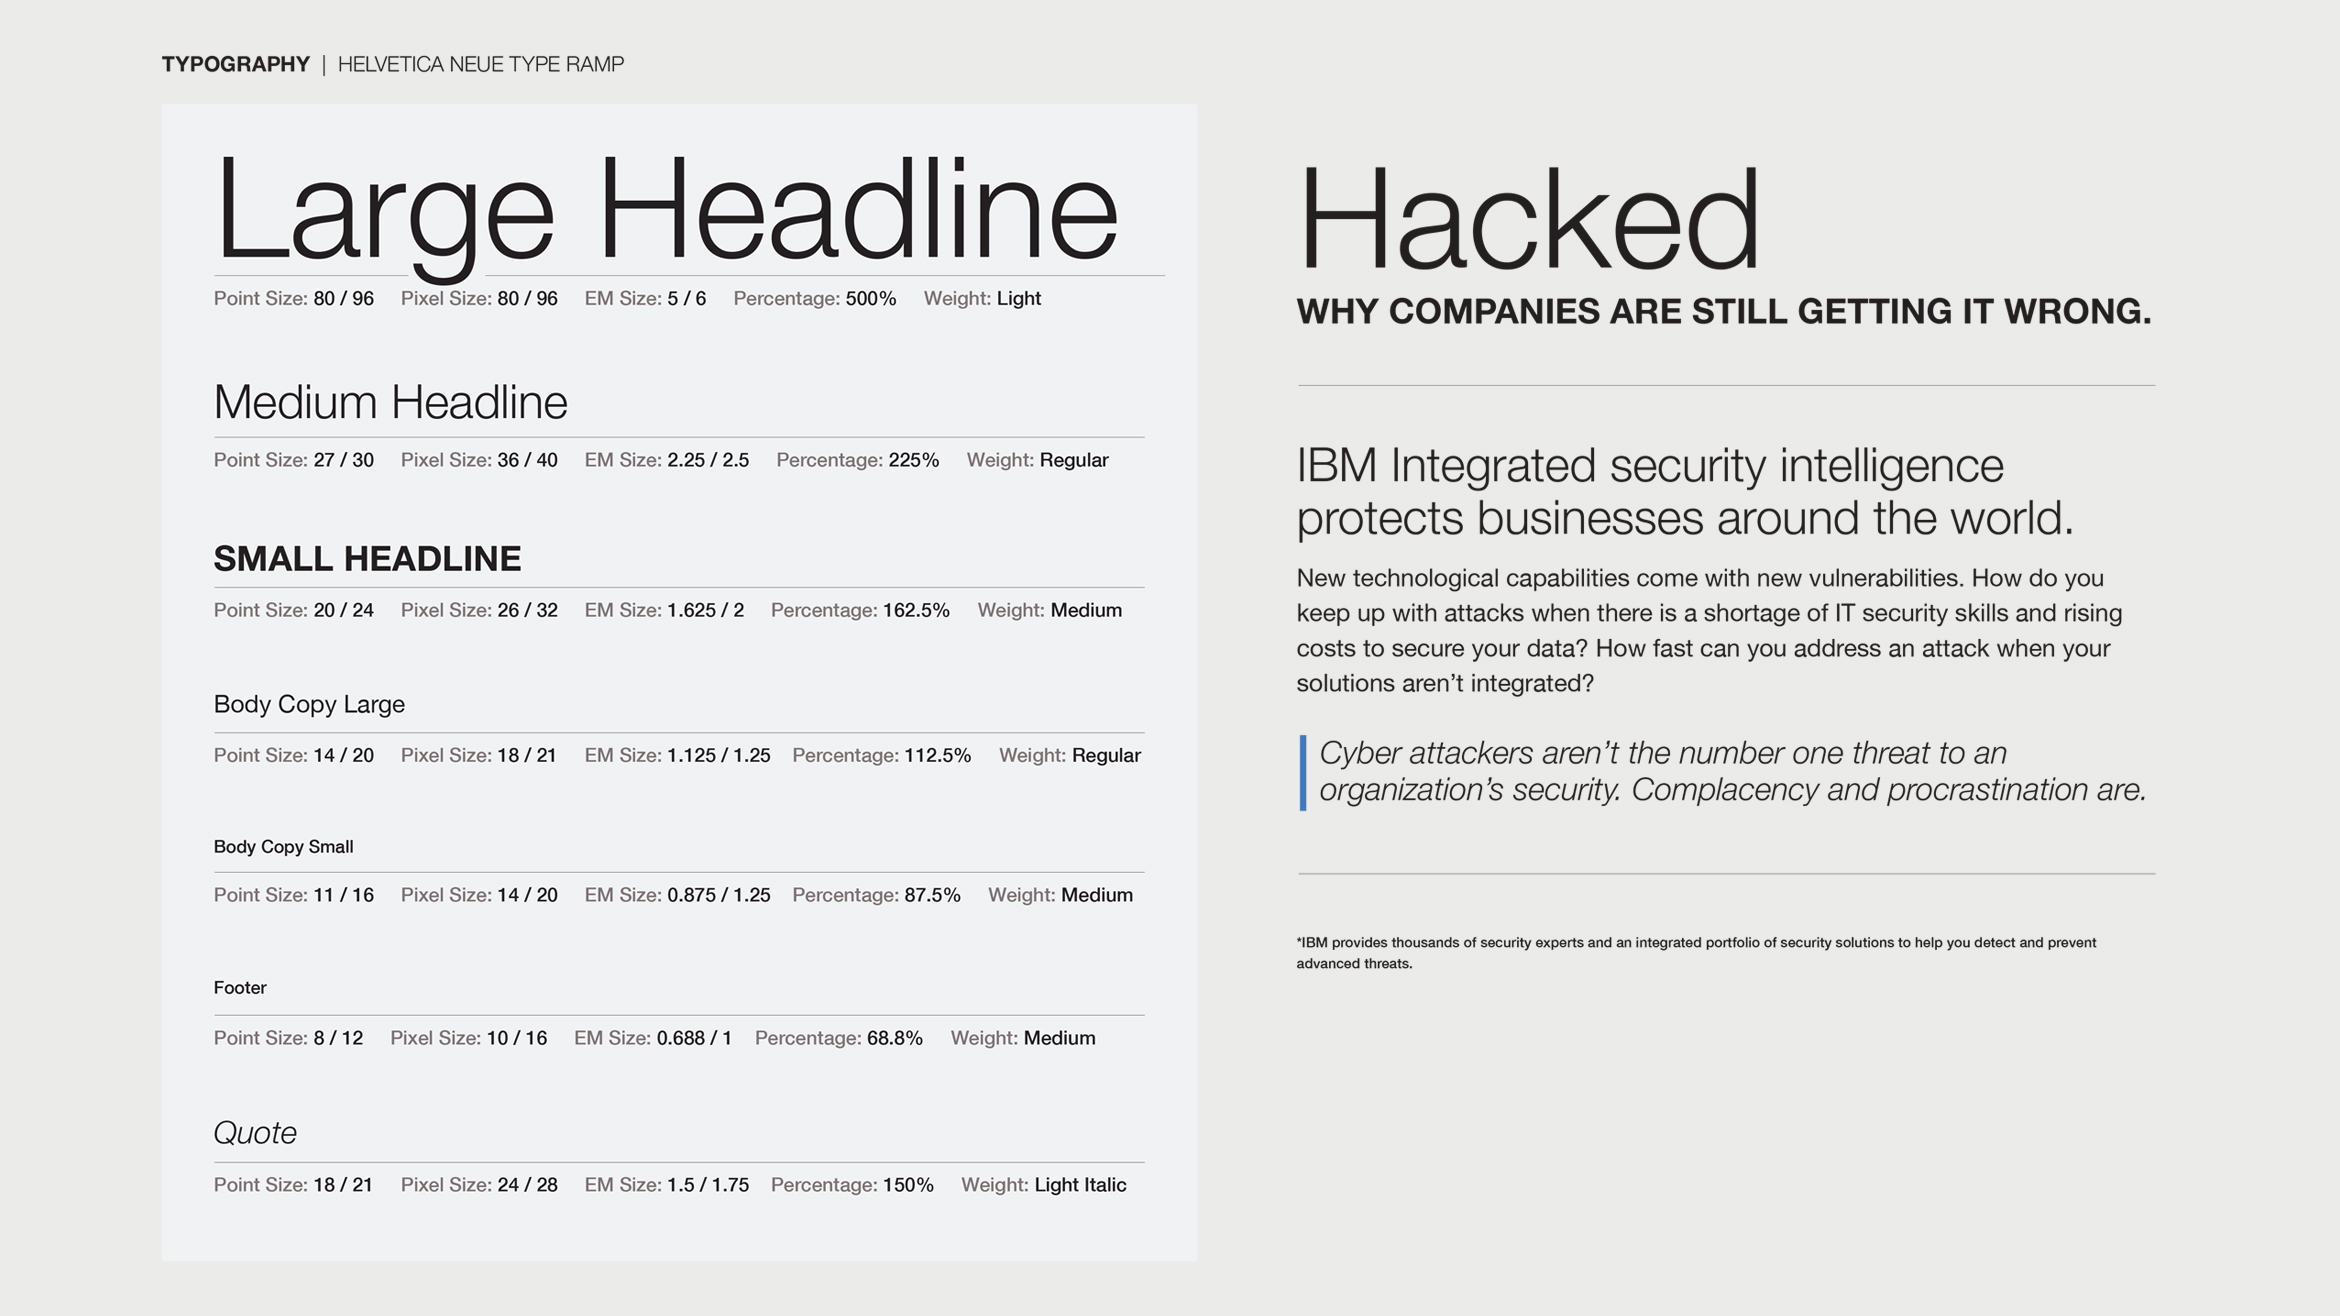 ibm_security_6_2340x1316